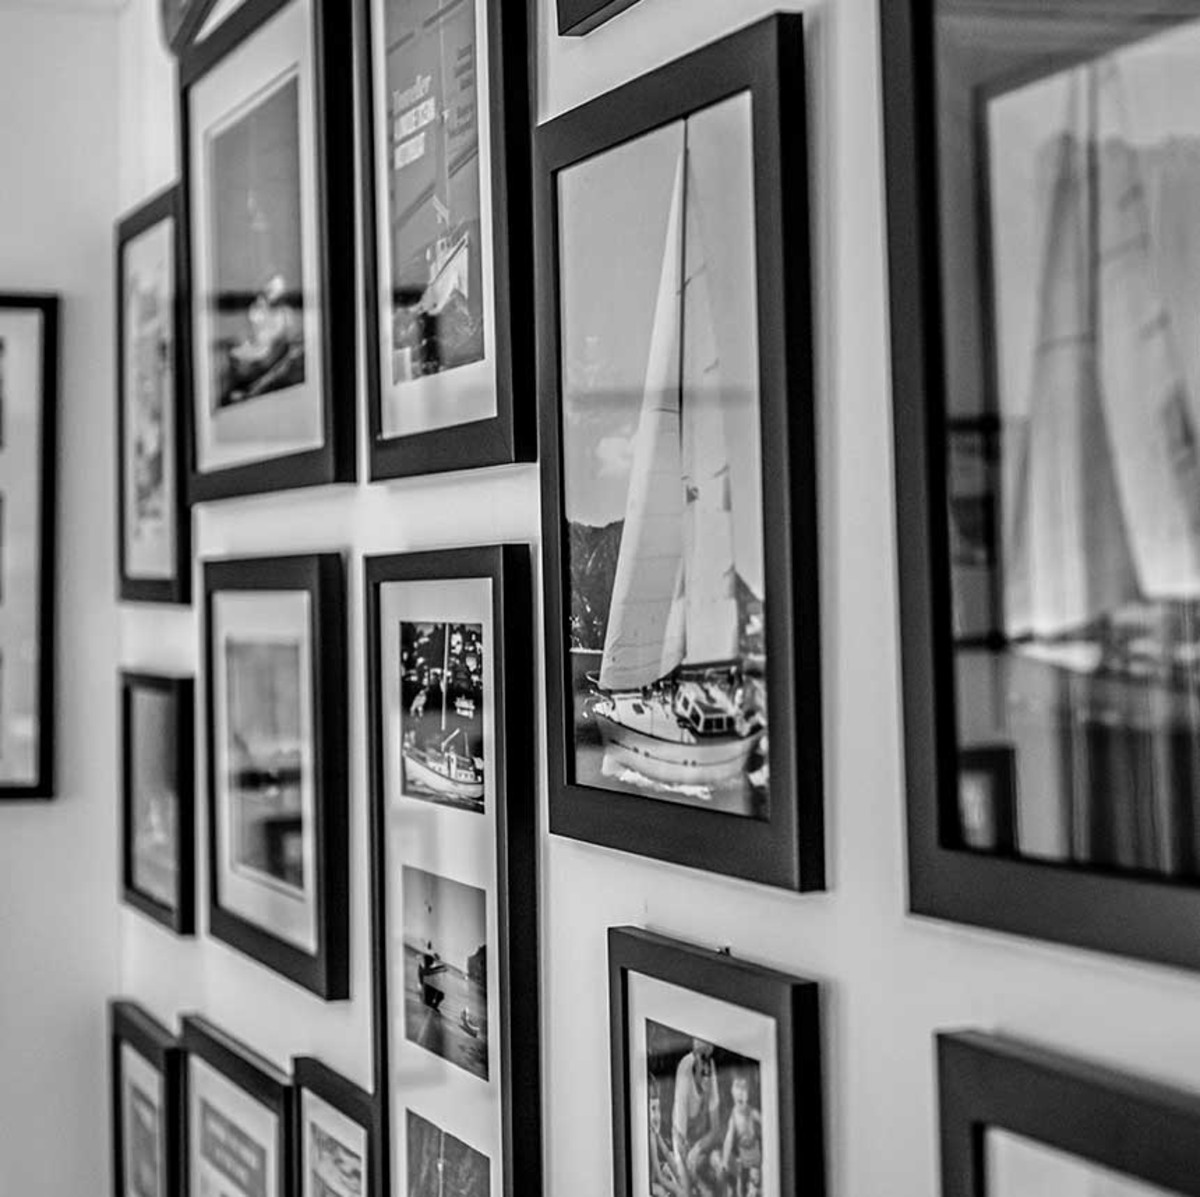 Though Deuel has only cruised three of the 15 boats Saunders has owned, she helps retell the stories of all the Tropicbirds, Travellers and other vessels whose images adorn the walls of their new home.